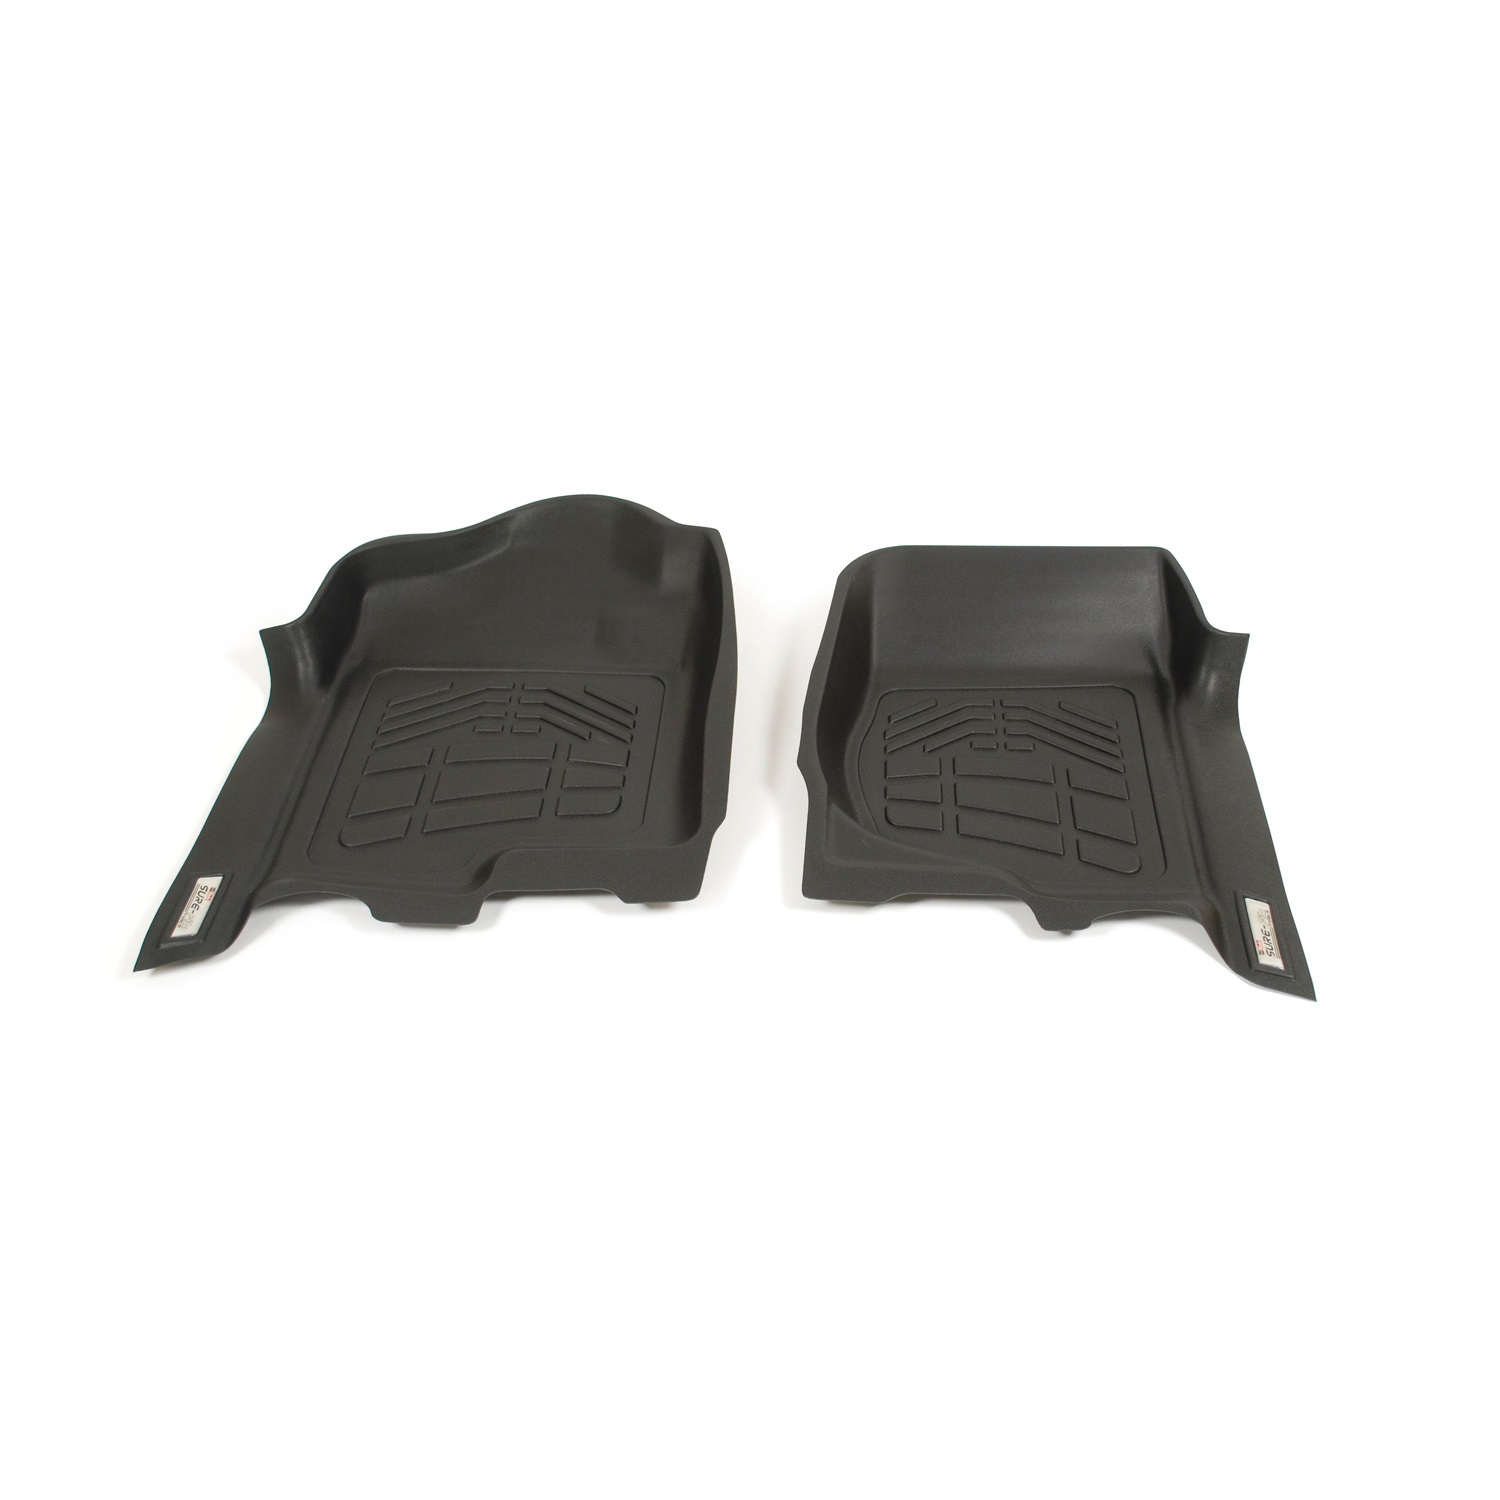 Floor mats gmc yukon xl - New Westin Wade Sure Fit Floor Mat Gmc Yukon Xl 1500 Sierra 3500 Hd 2500 Fs Vq